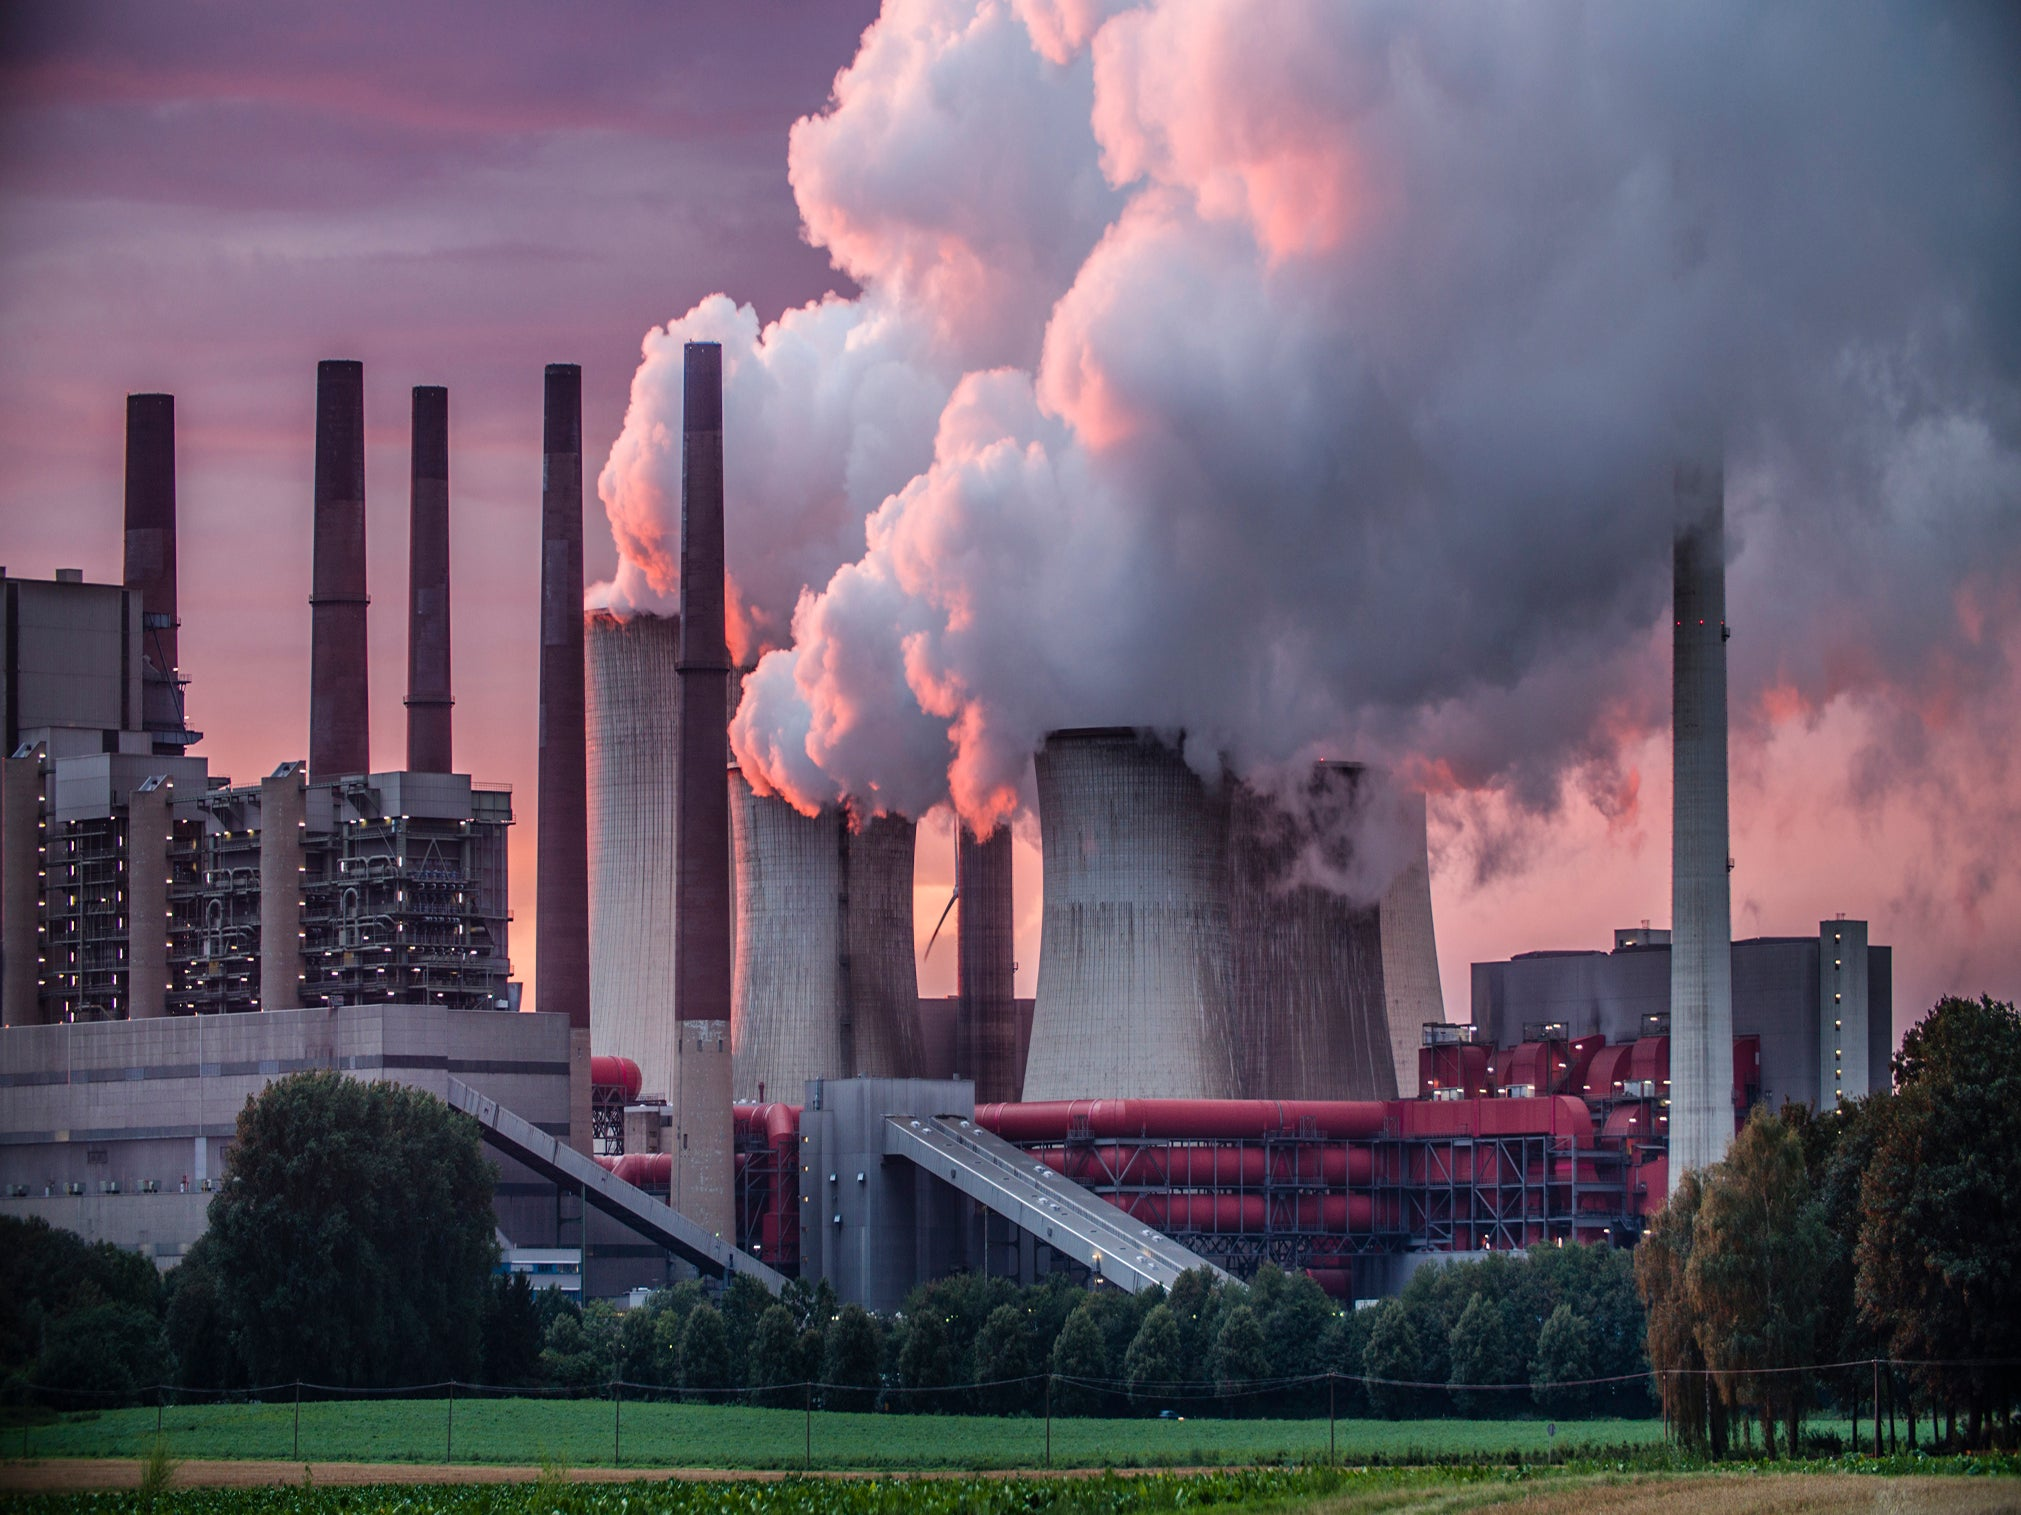 Britain has 30 years to cut emissions – after Brexit we must lead the world on climate change